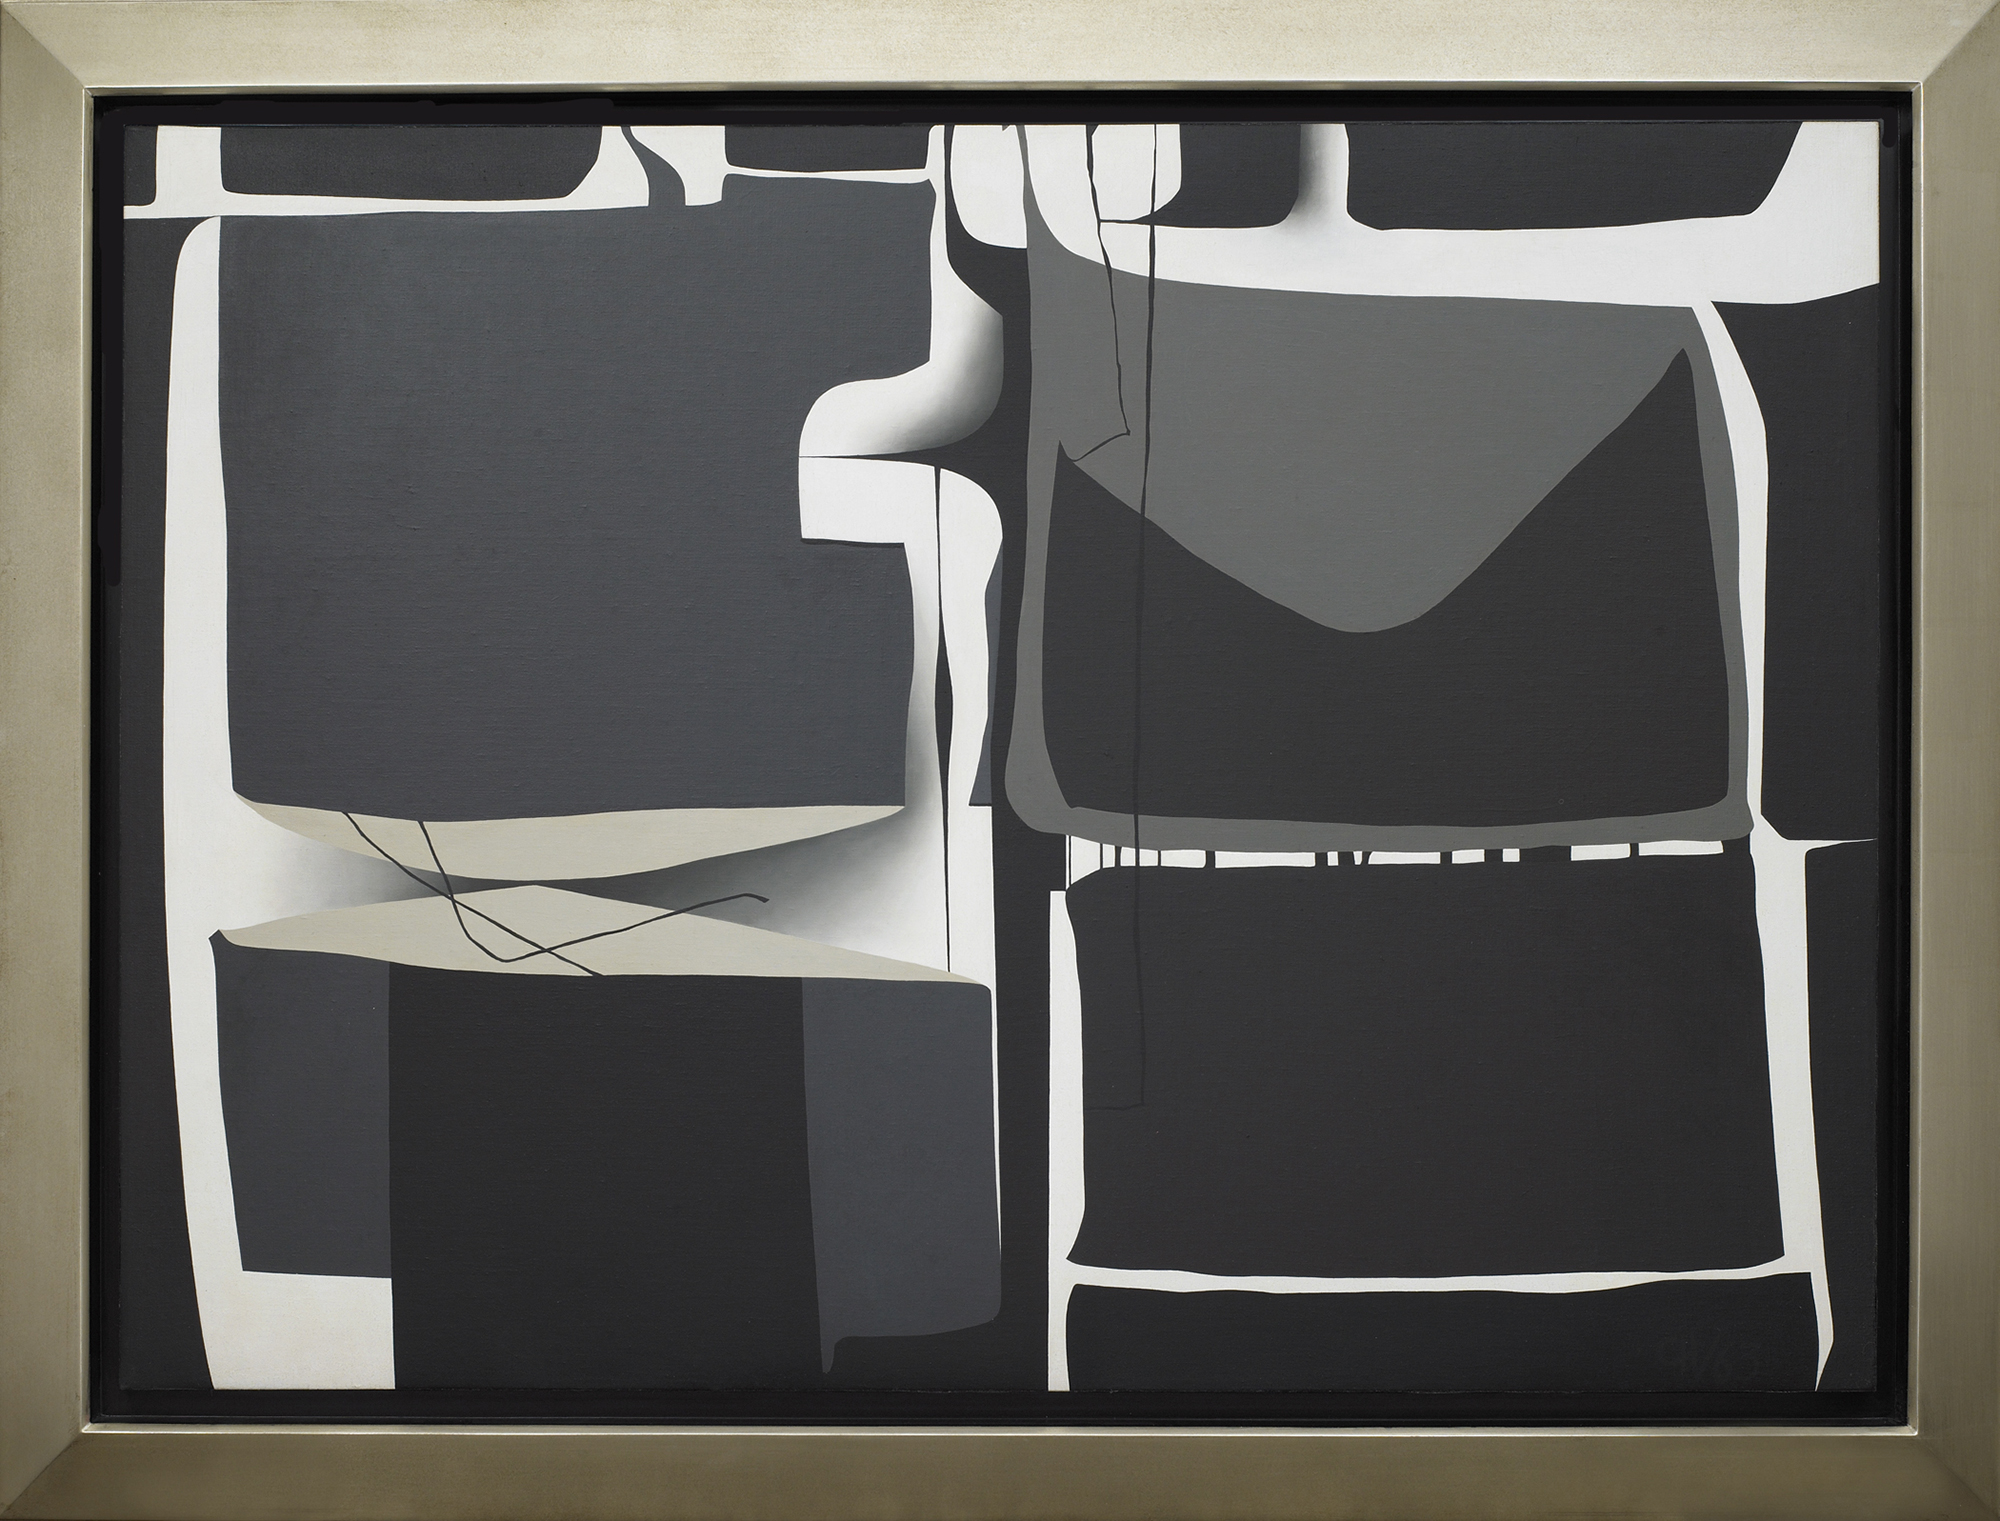 Painting-1963 (II),   Oil on canvas, 1963, 33 x 45 ¾ inches